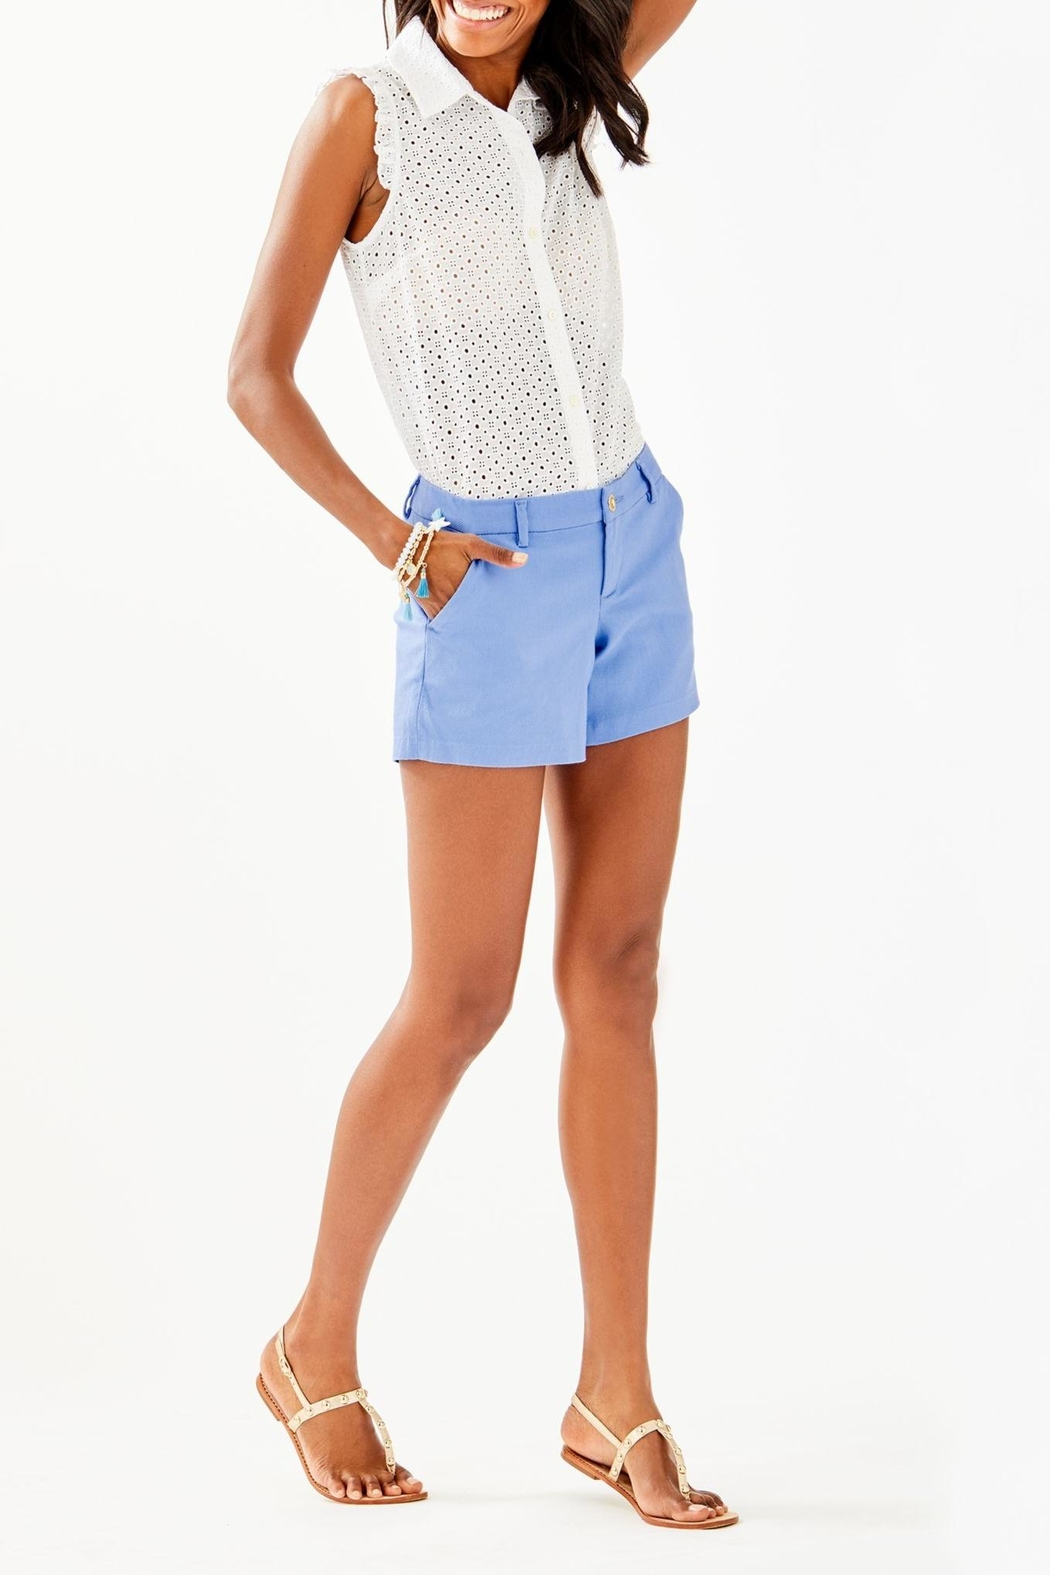 Lilly Pulitzer Callahan Stretch Short - Back Cropped Image